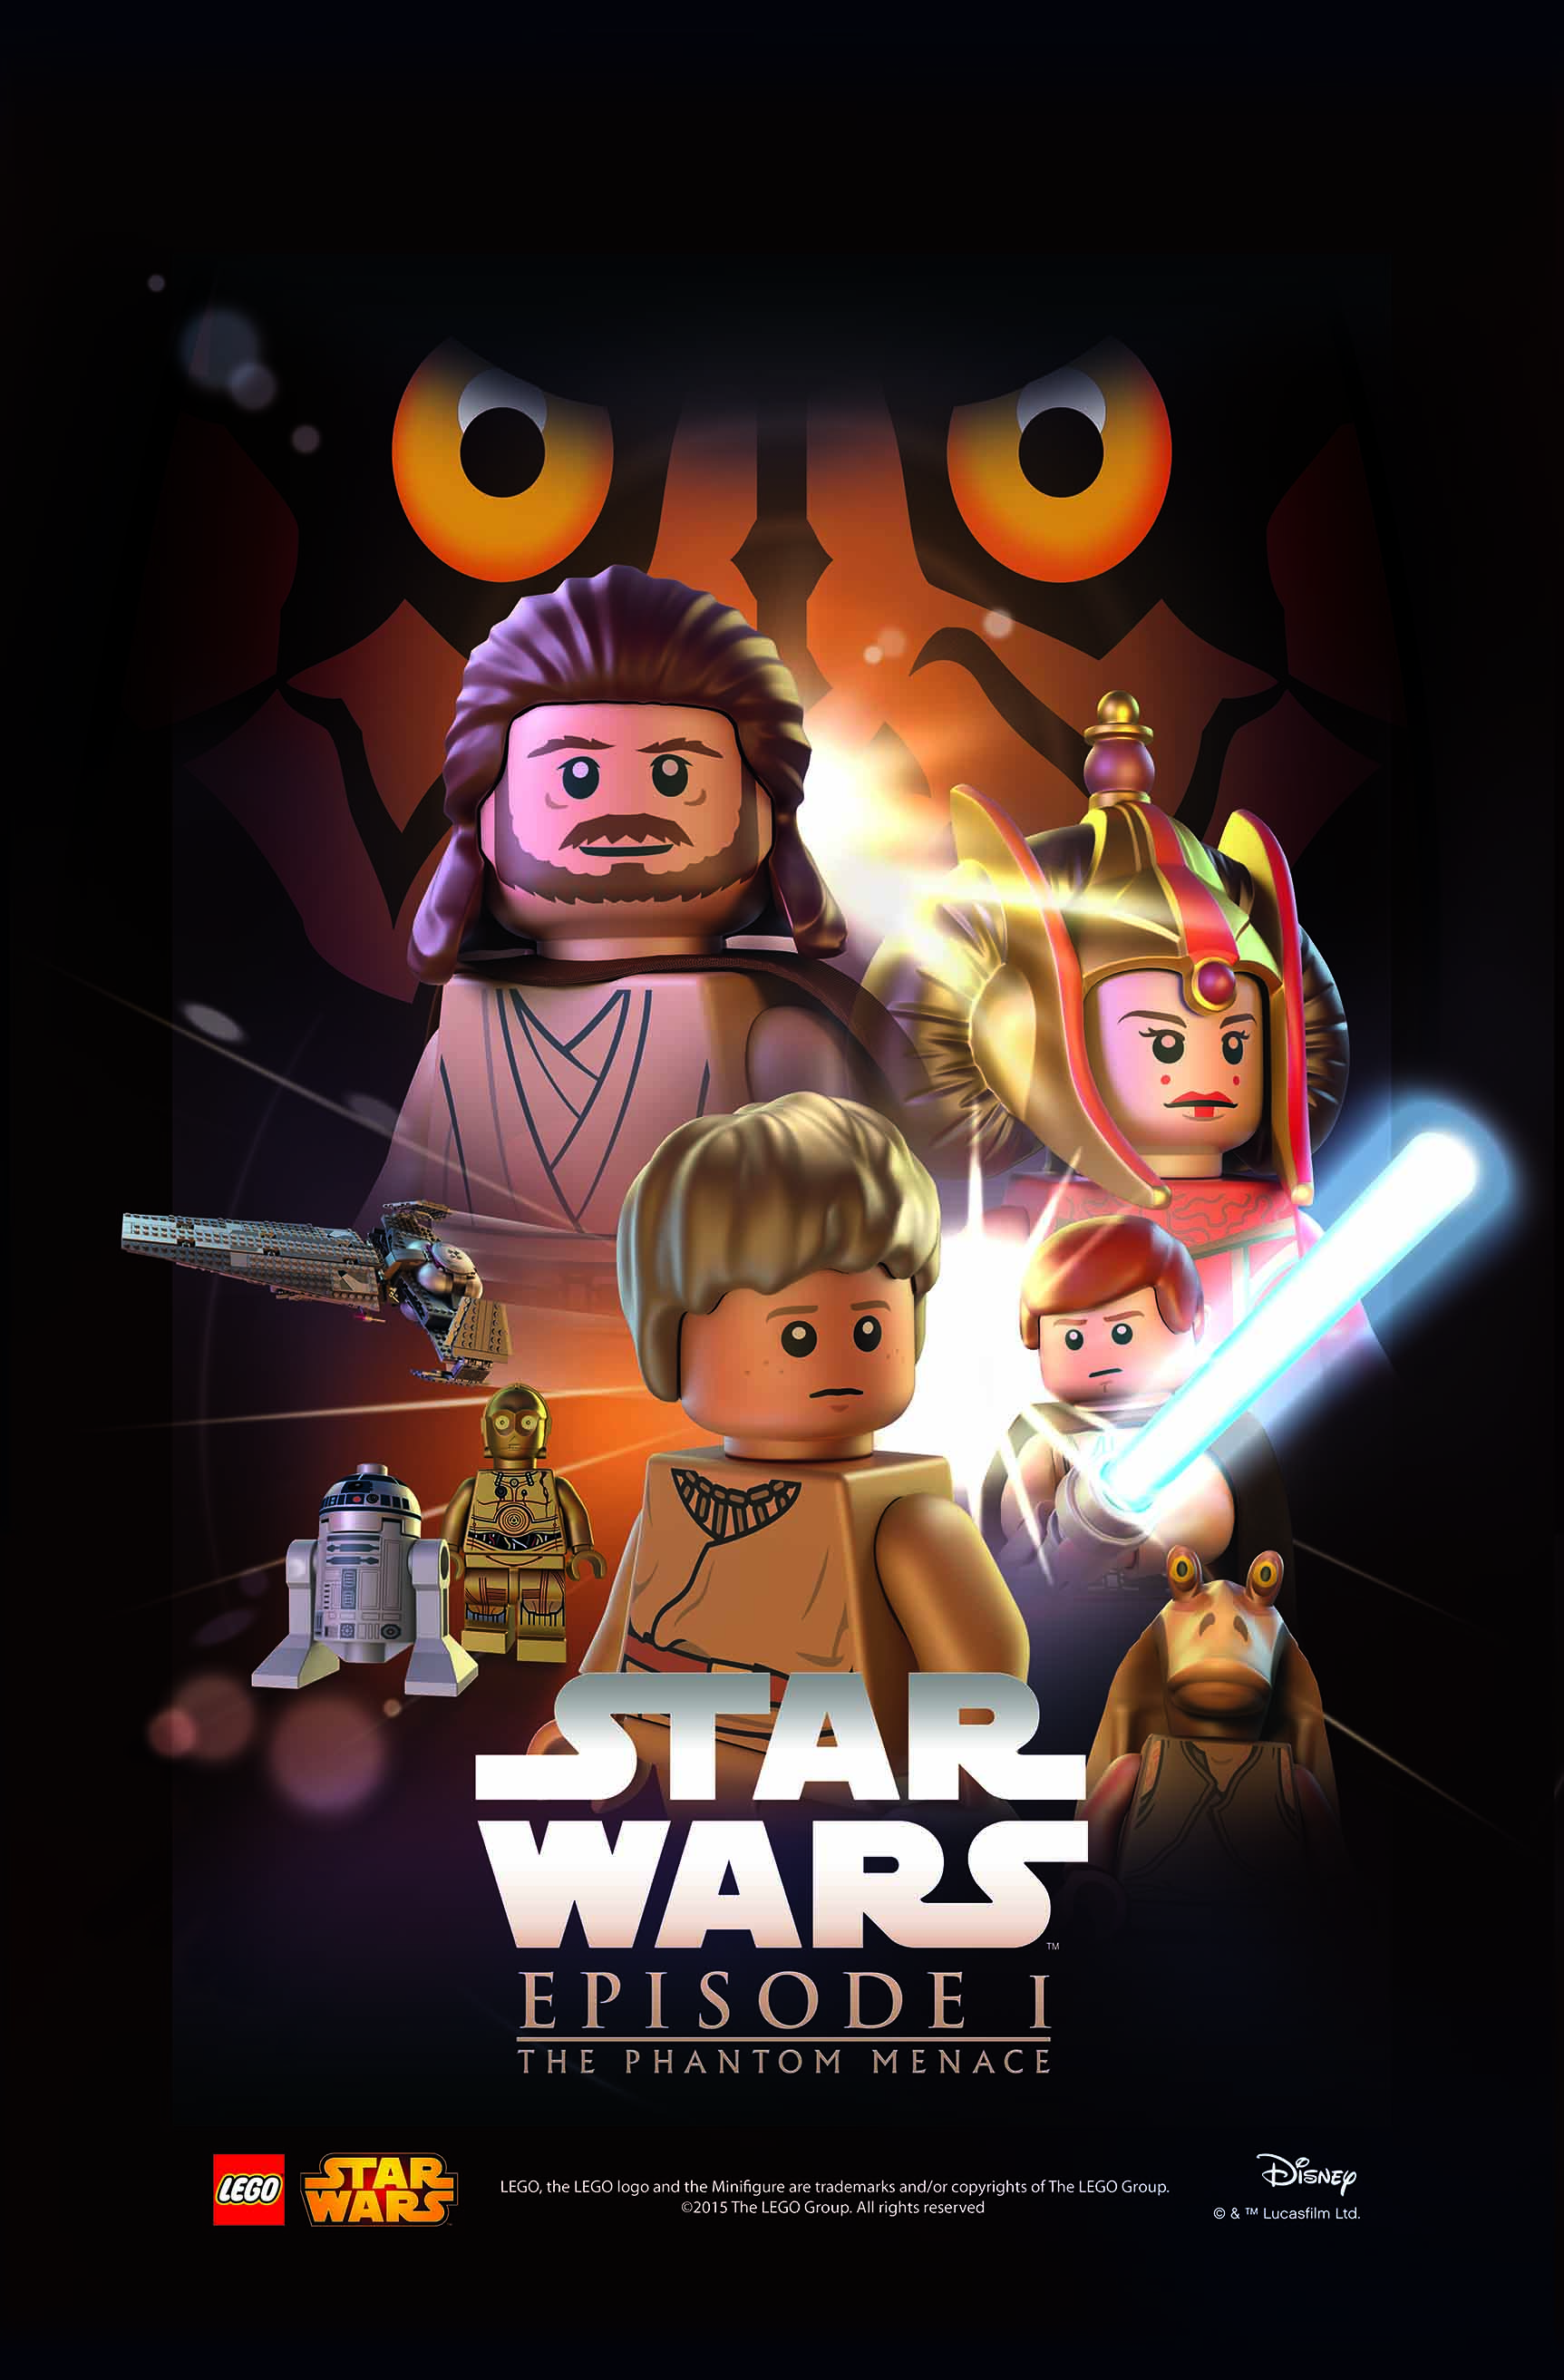 star wars in lego movie